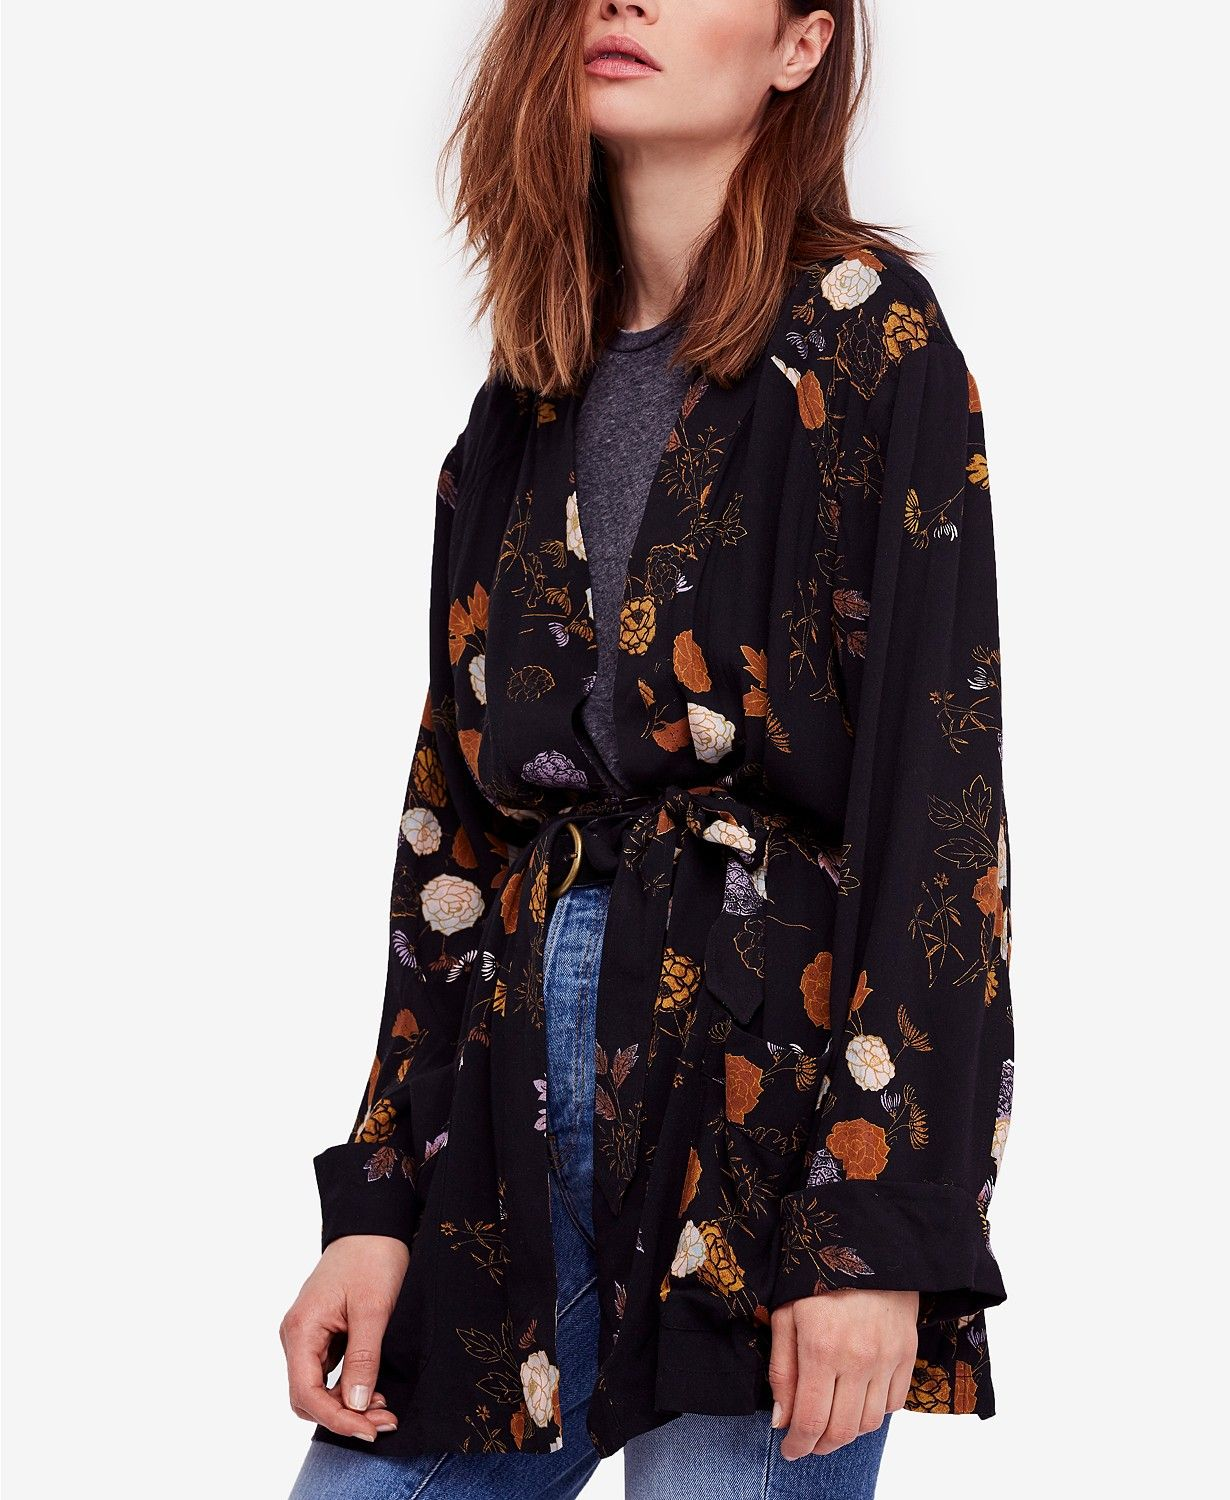 363be6493 Free People's kimono-inspired wrap jacket is styled with a pretty floral  print and a clever open front that ties-up with a self-tie belt.